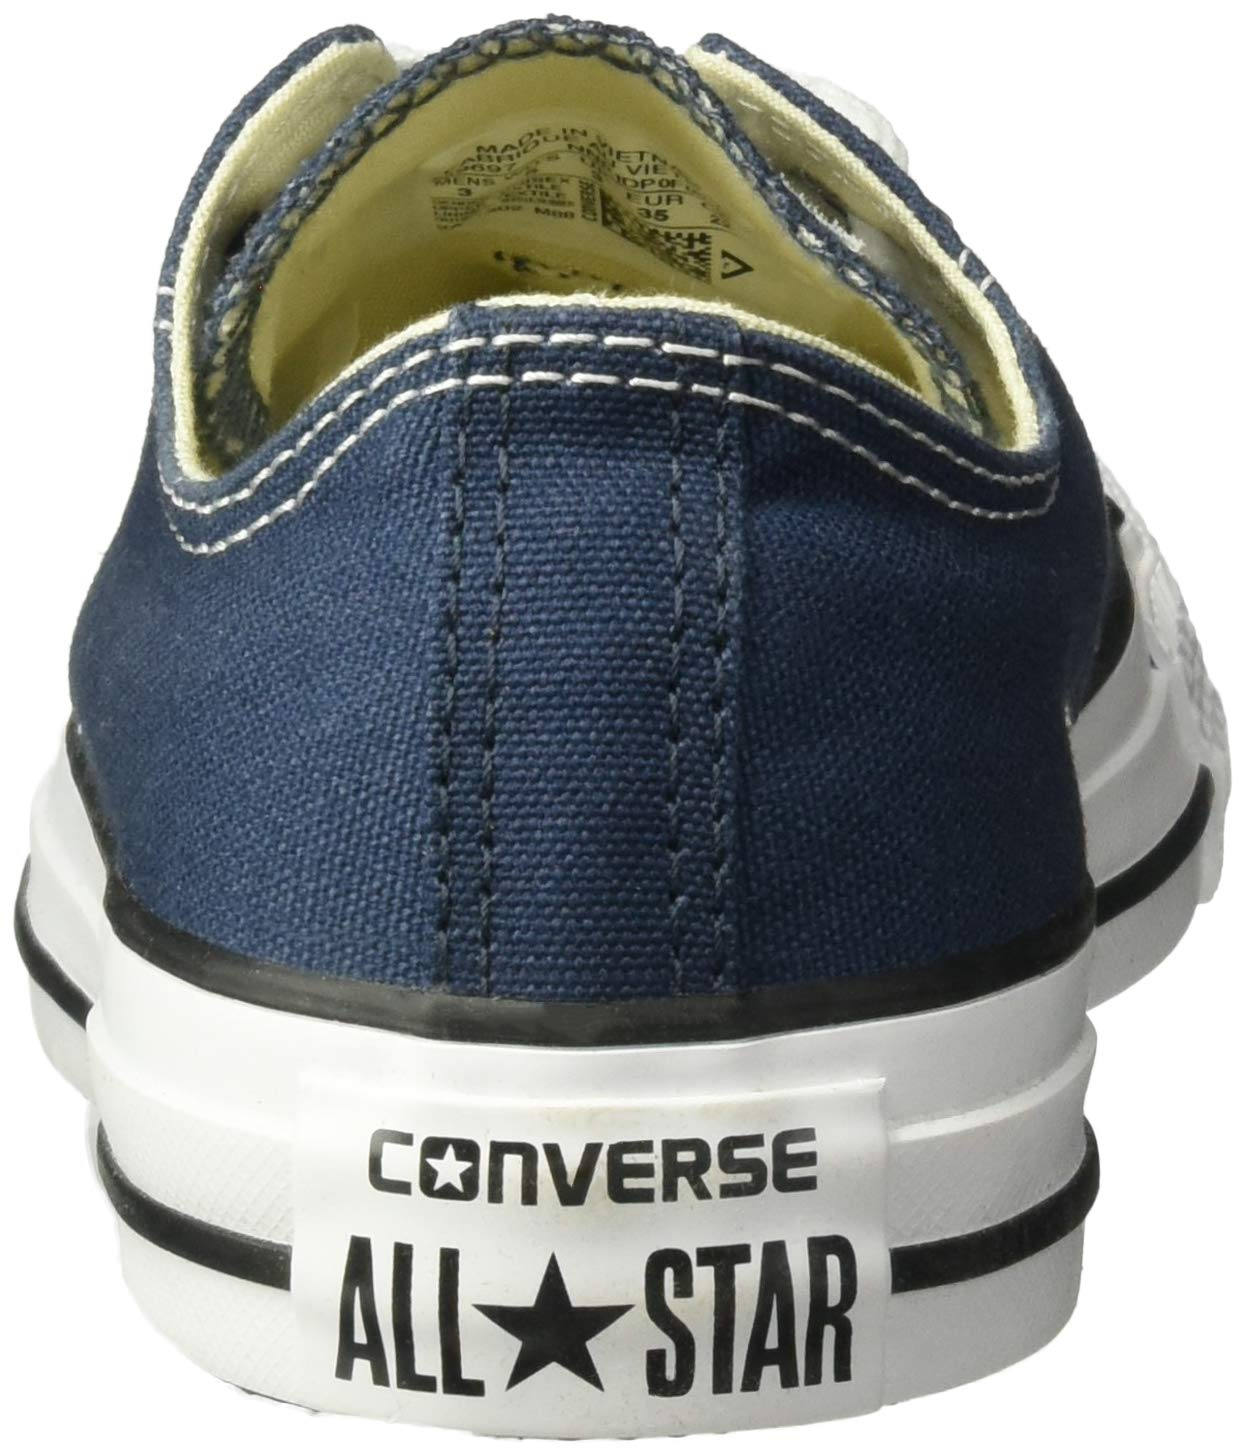 Converse Unisex Chuck Taylor All Star Low Top Navy Sneakers - 12MN-14WO B(M) US by Converse (Image #2)